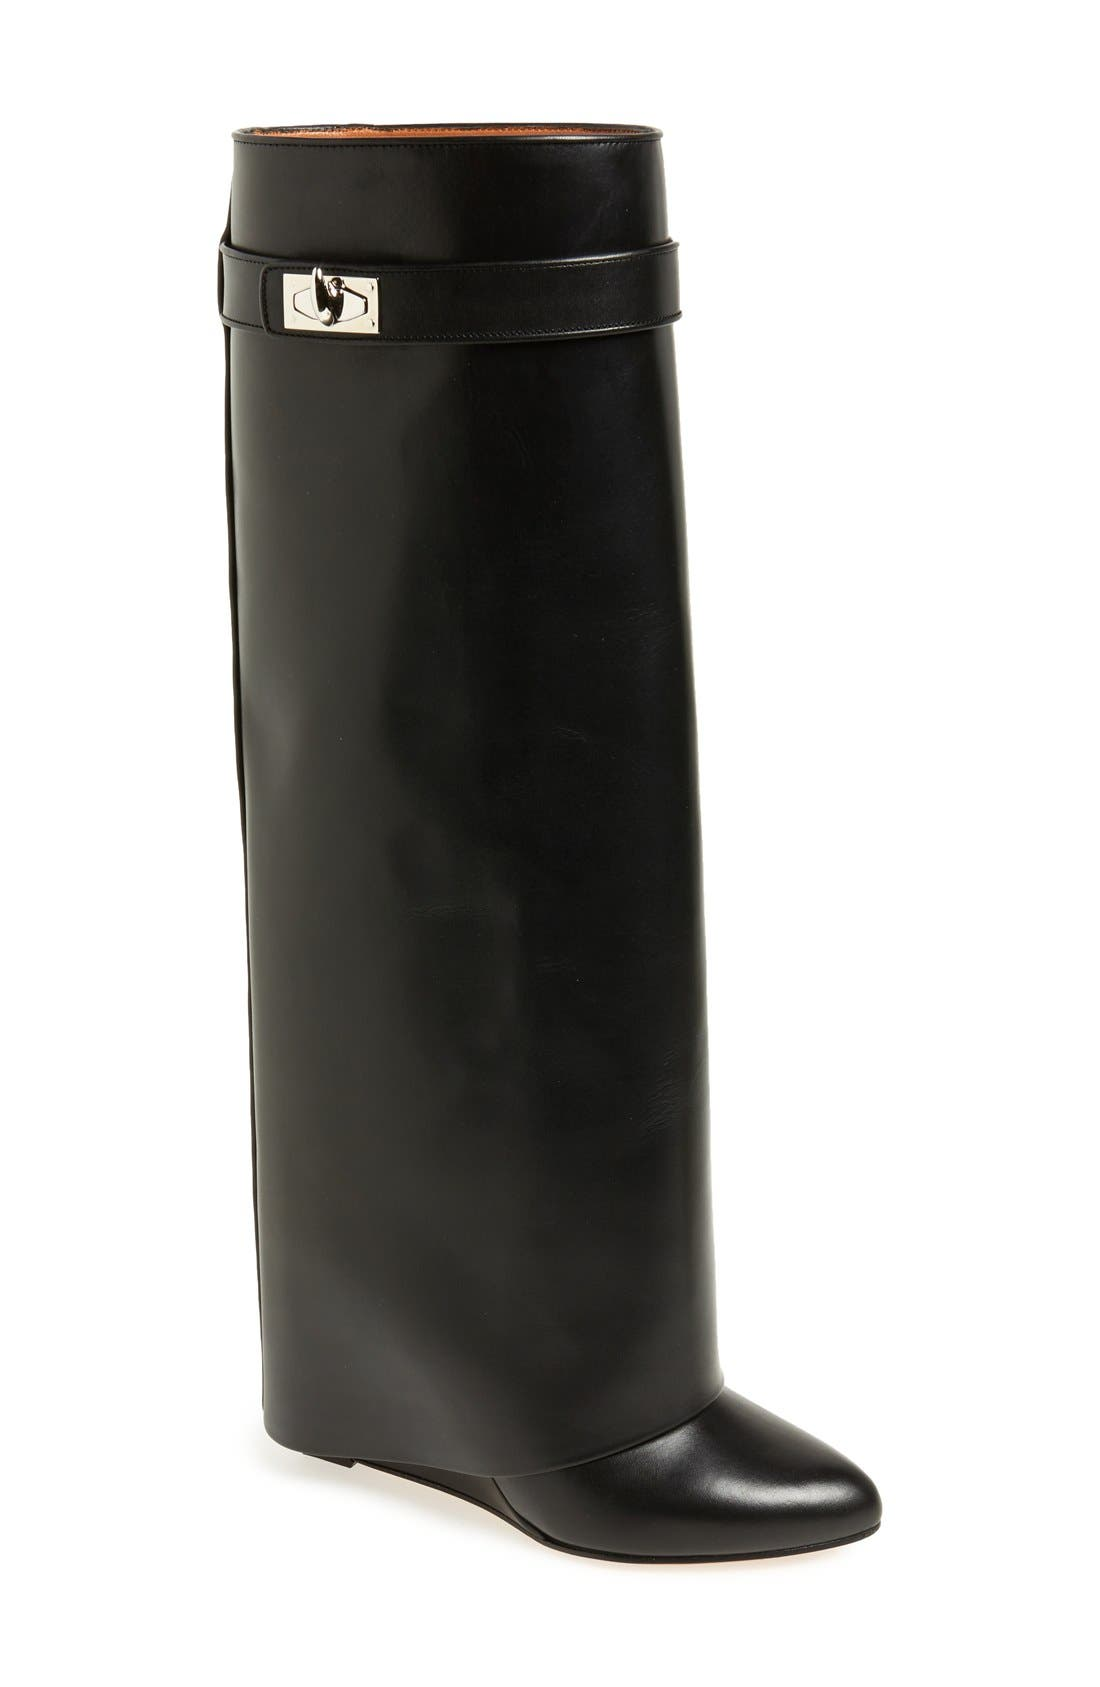 Alternate Image 1 Selected - Givenchy Shark-Tooth Pant-Leg Knee Boot (Women)